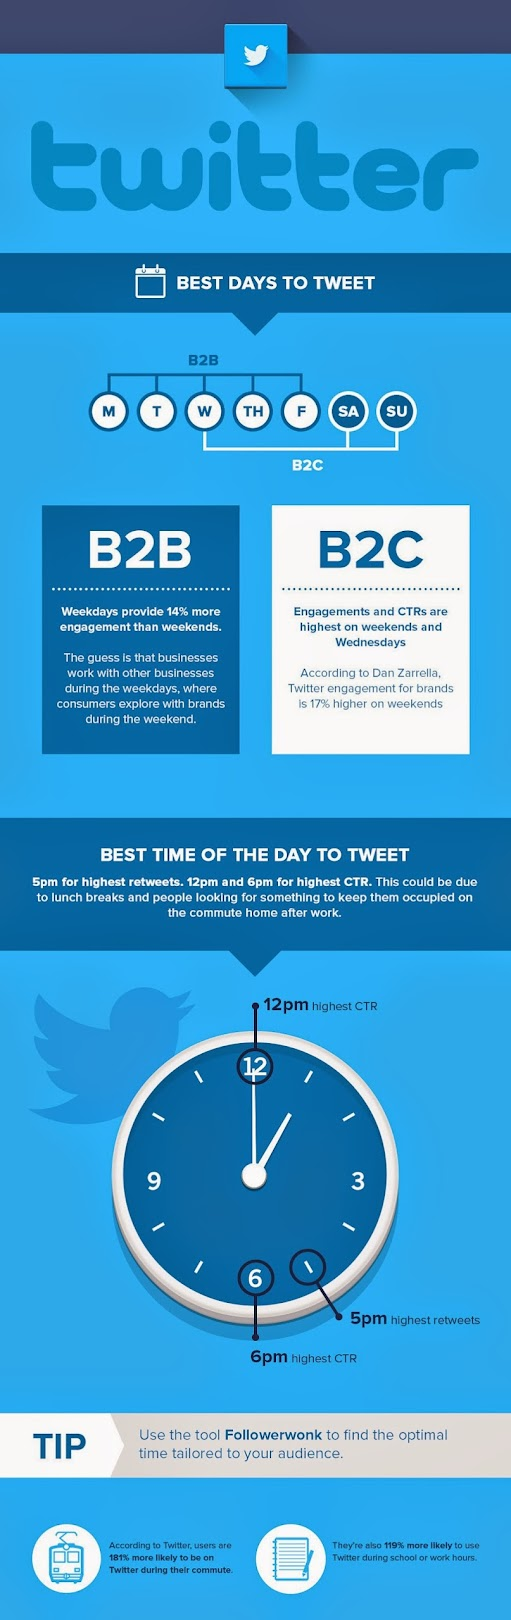 2. What's the best time to tweet on twitter?